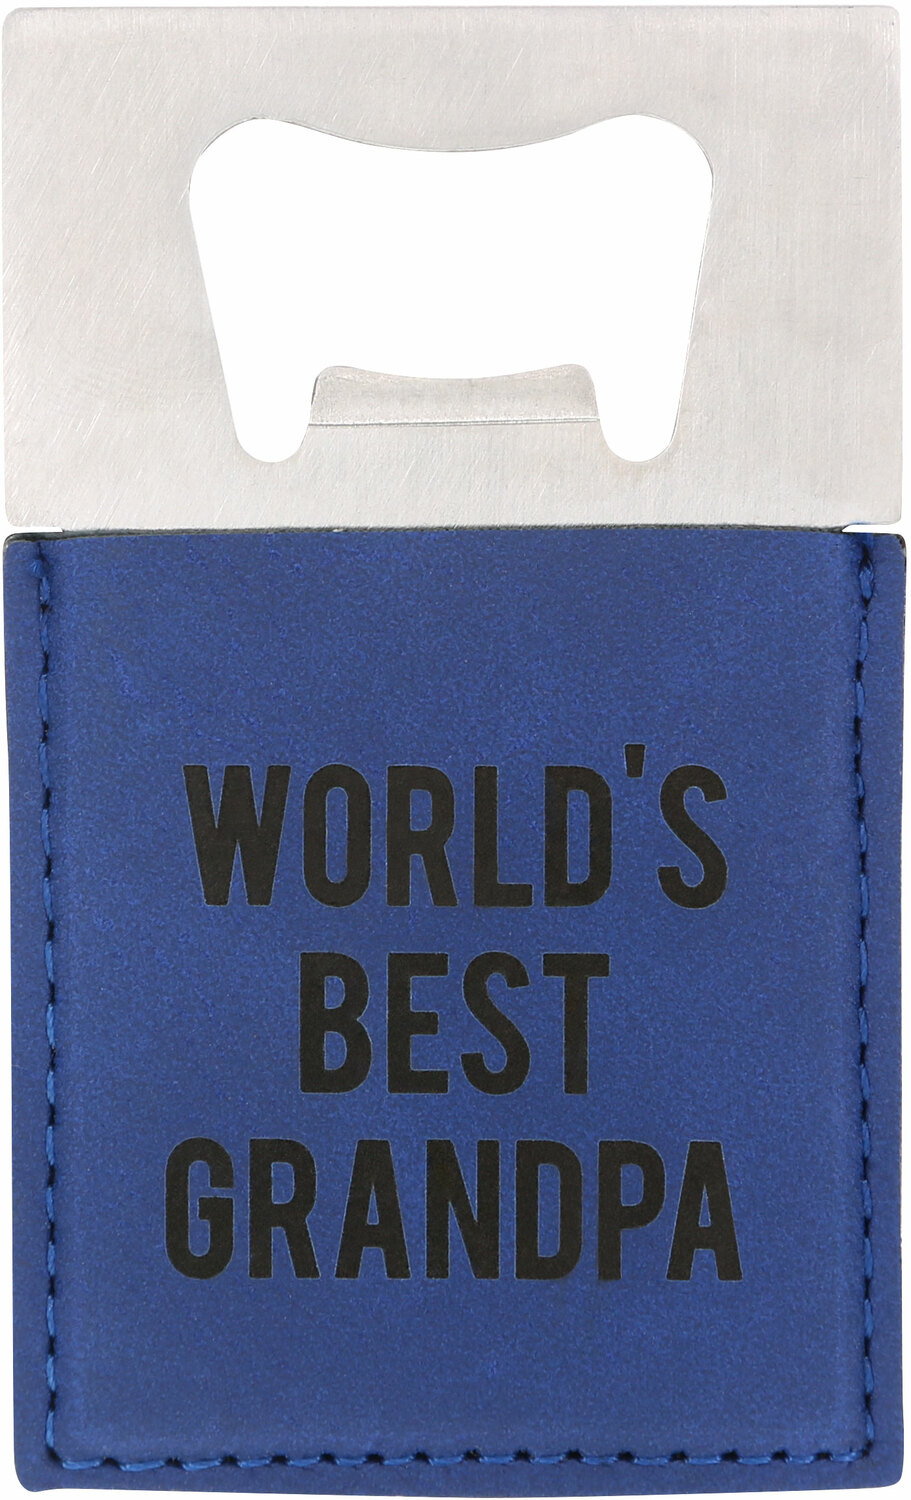 "Grandpa by Man Made - Grandpa - 2"" x 3.5"" Bottle Opener Magnet"